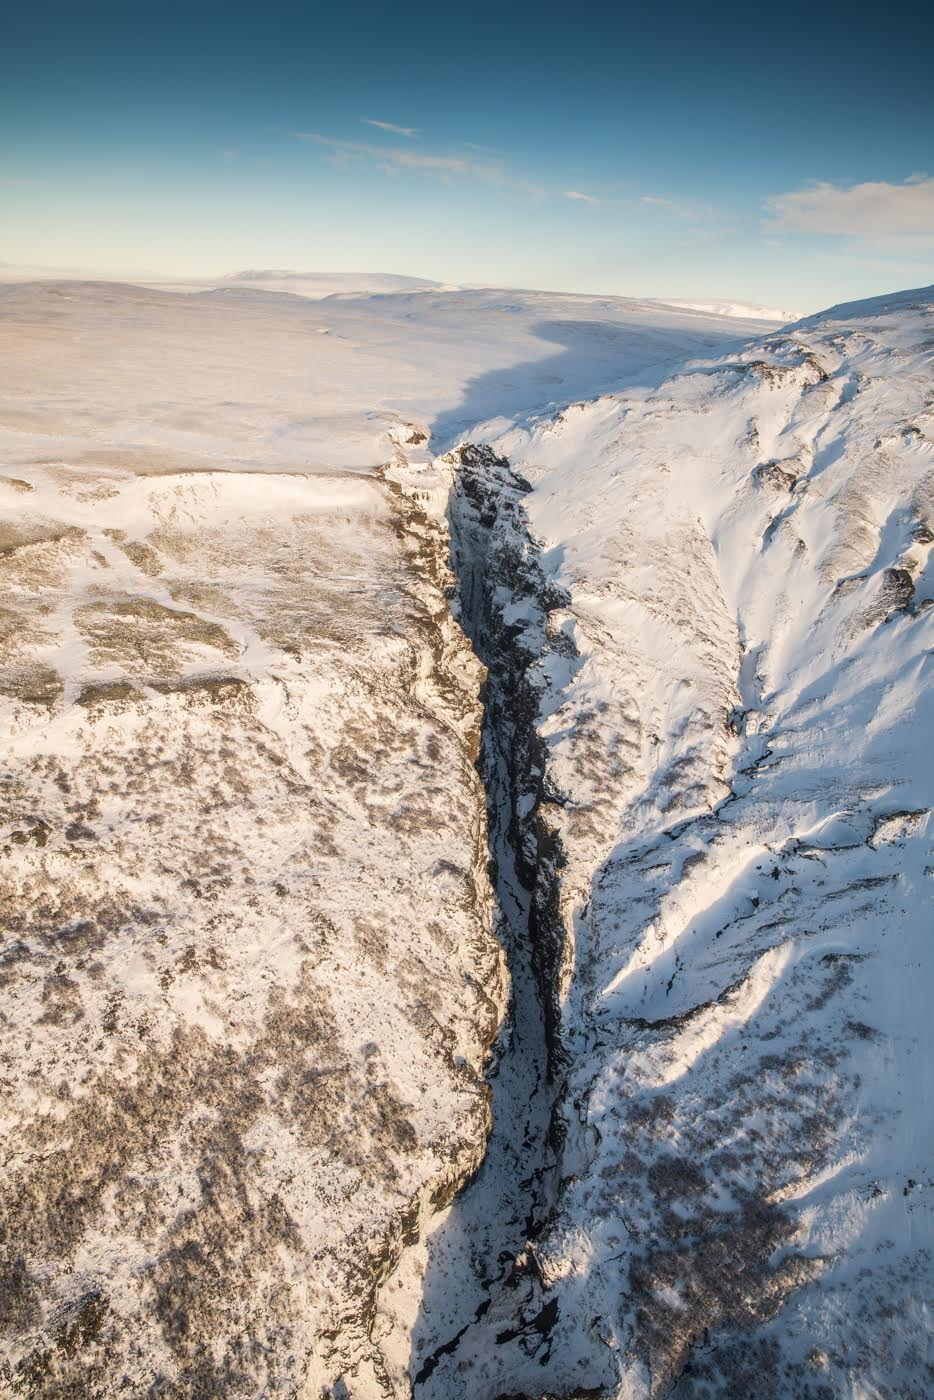 Seeing Iceland from above is truly a unique experience, not easily forgotten by even the most hardened traveller.